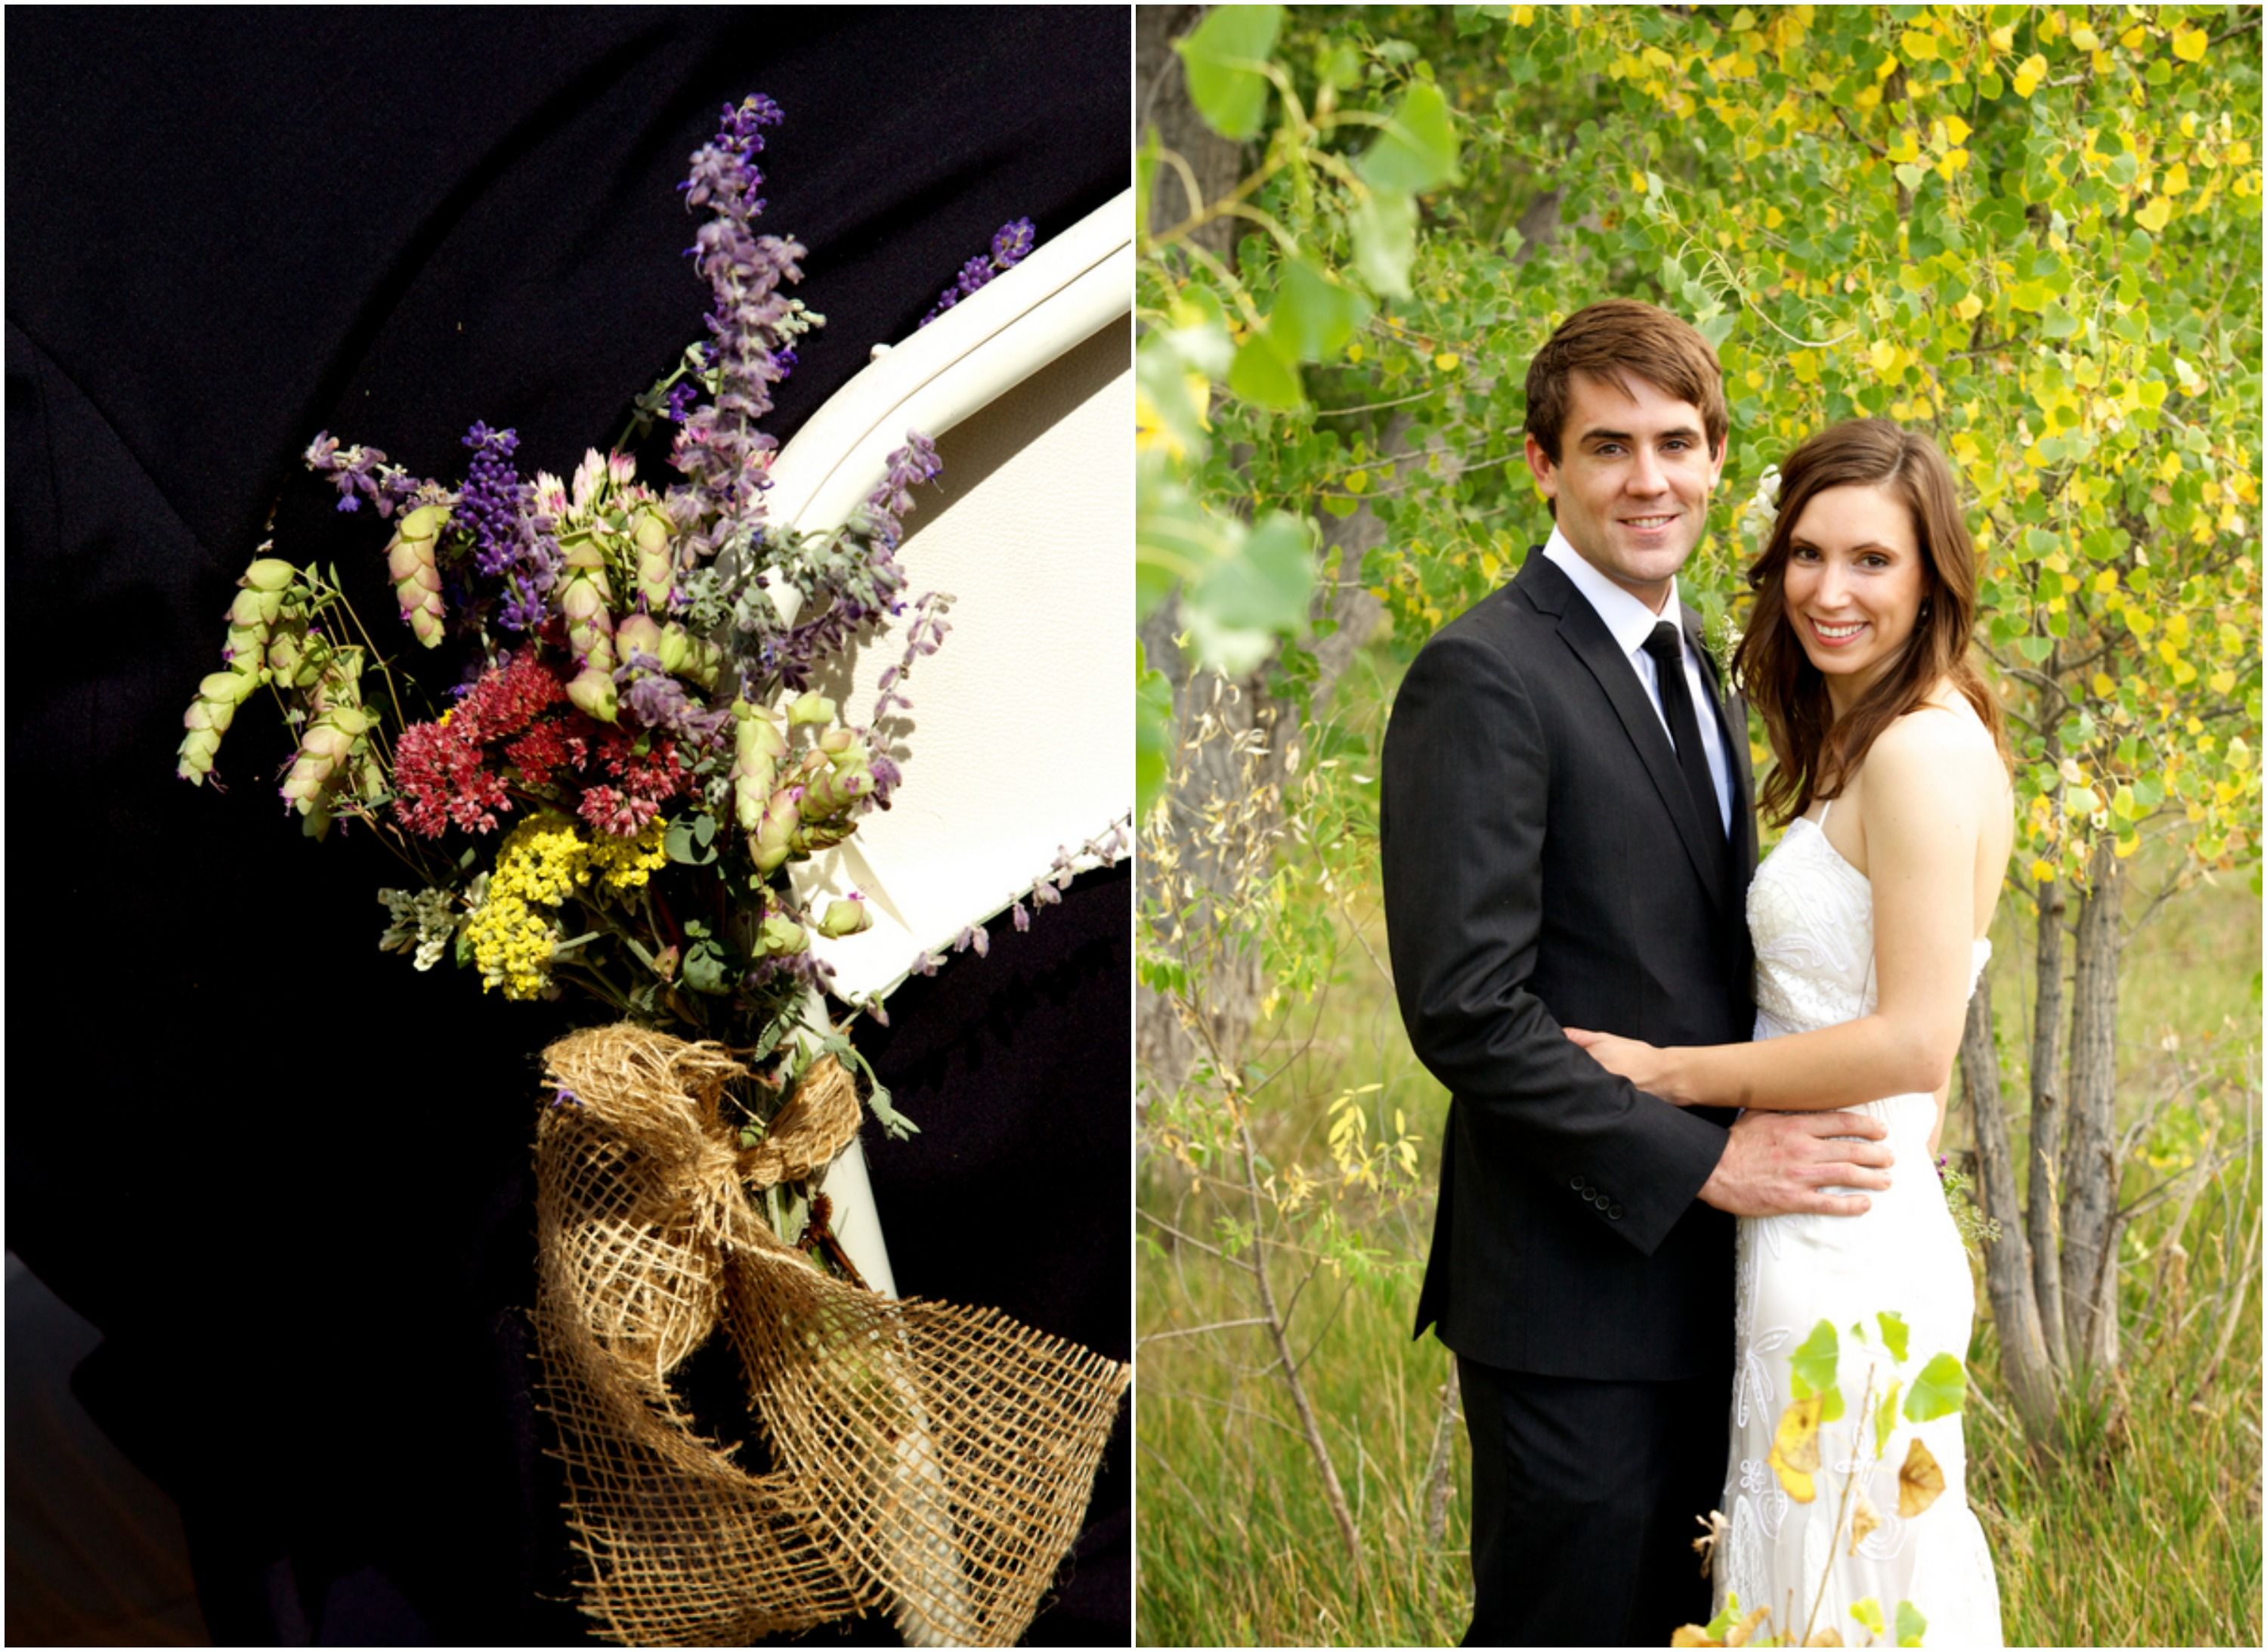 Love the burlap and flowers tied to the chairs- easy DIY